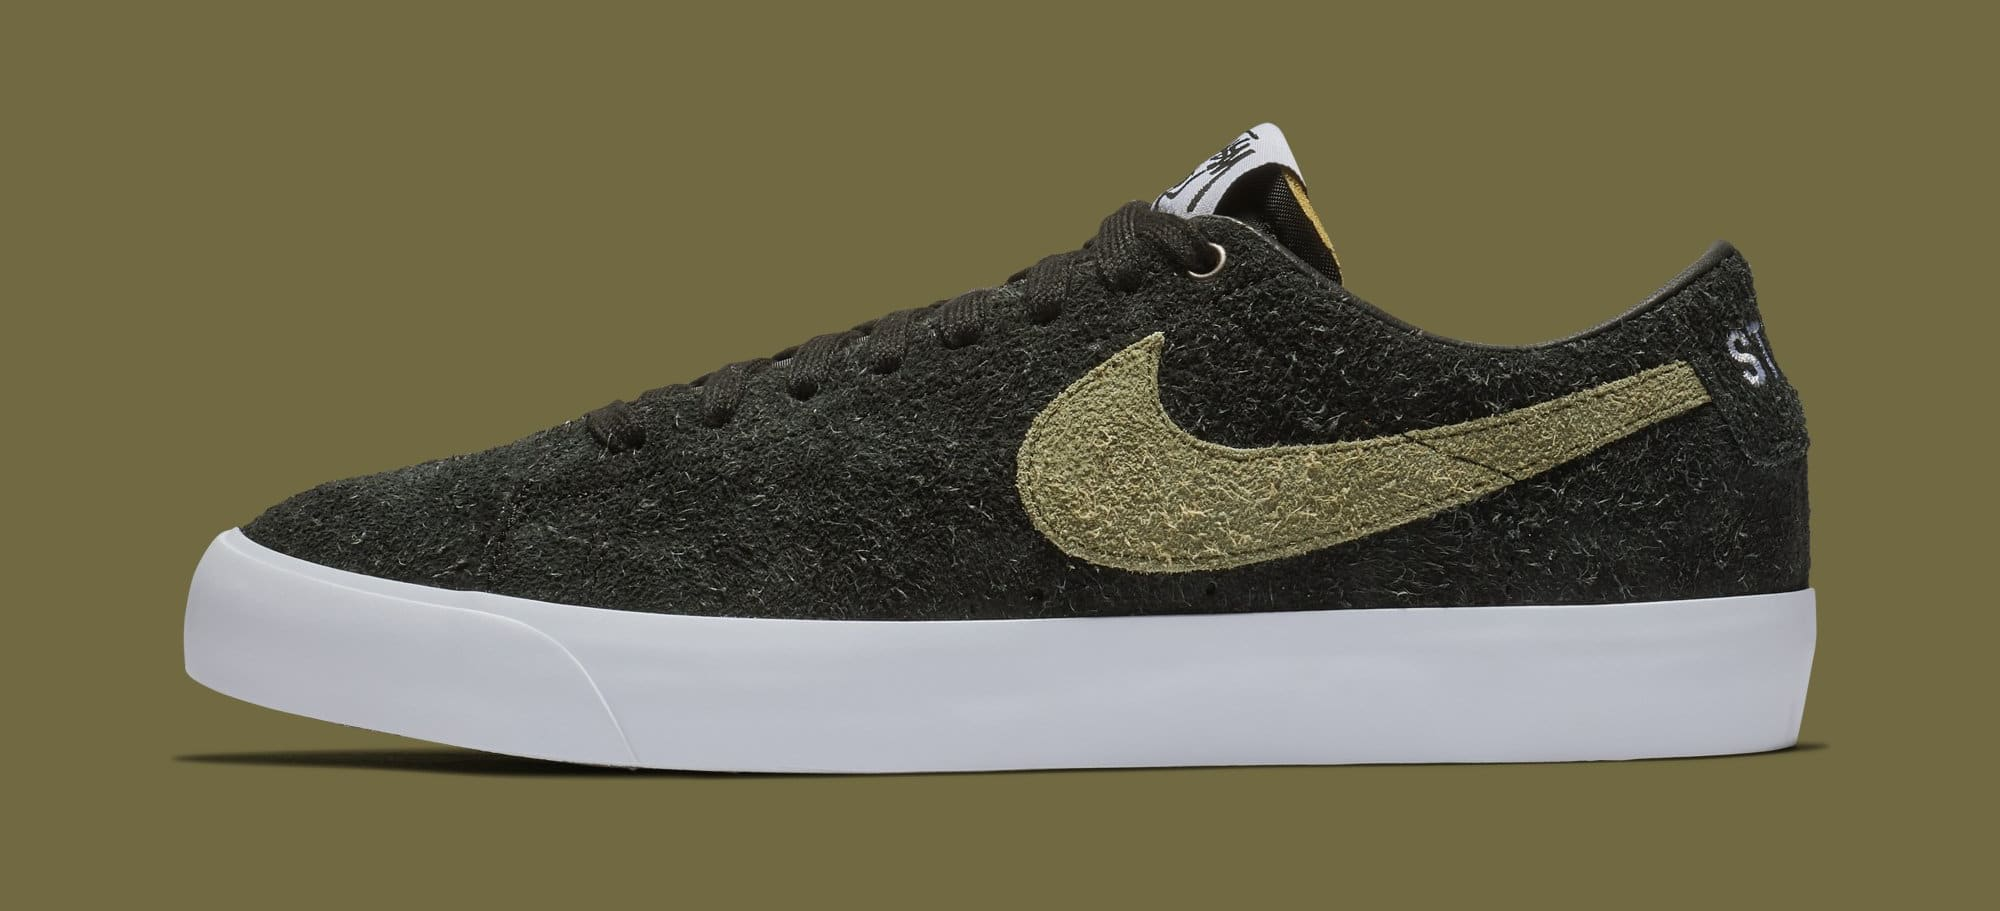 outlet store 5bebb 7f3fb Stüssy x Nike SB Blazer Mid/Low Release Date | Sole Collector